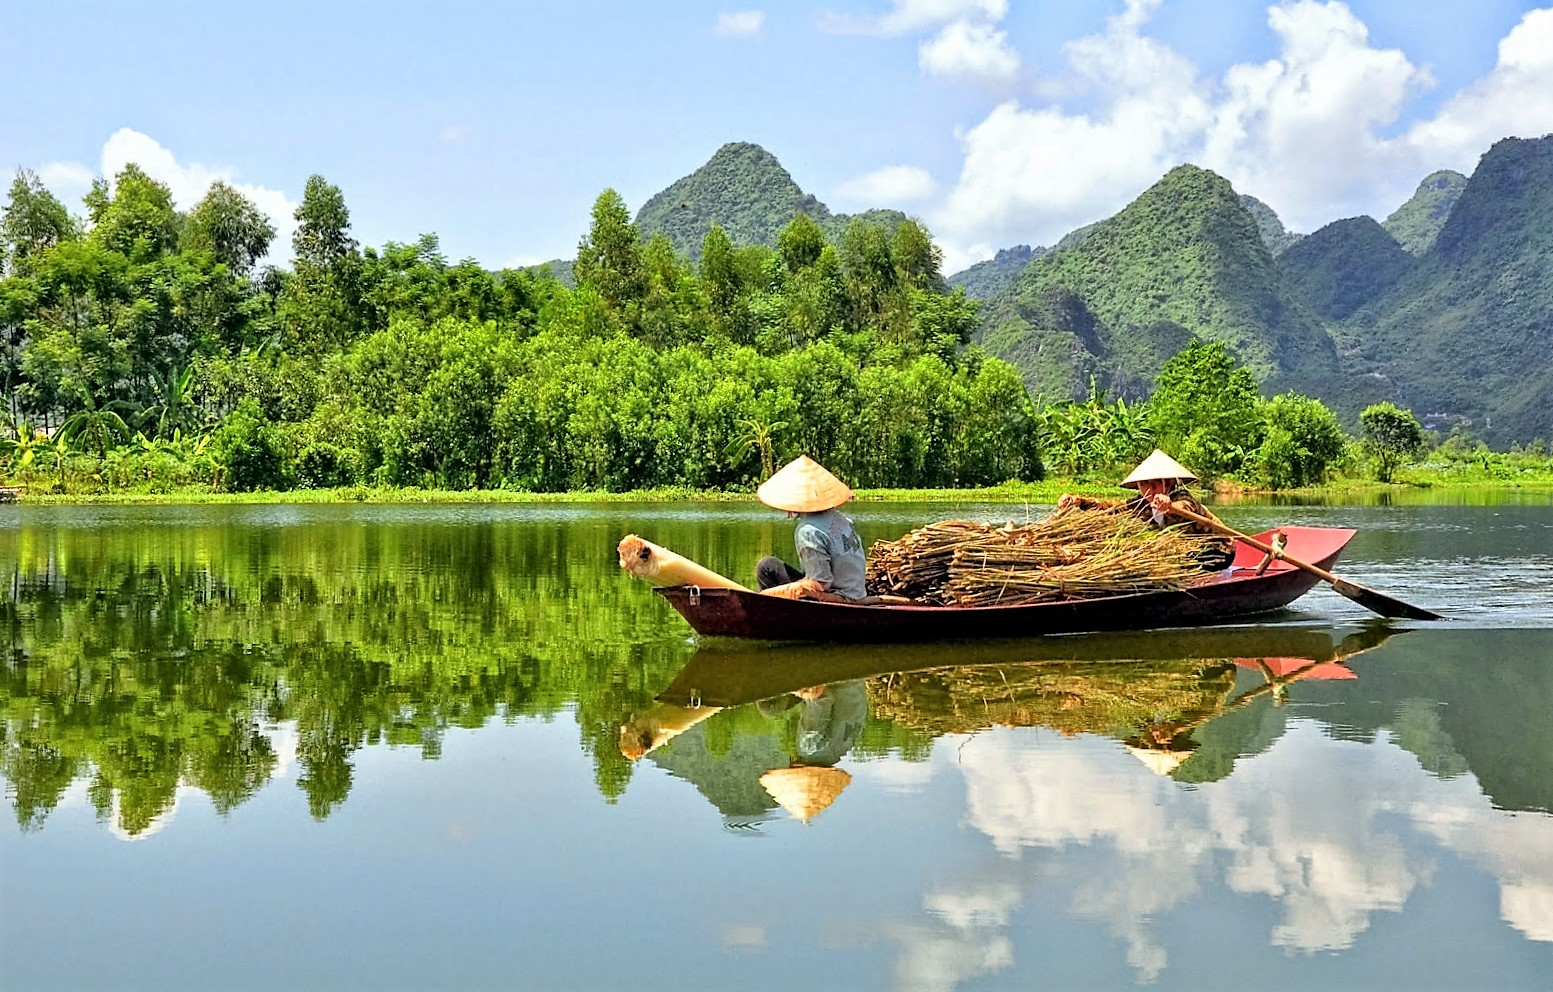 Travel Ideas for a Holiday in Vietnam